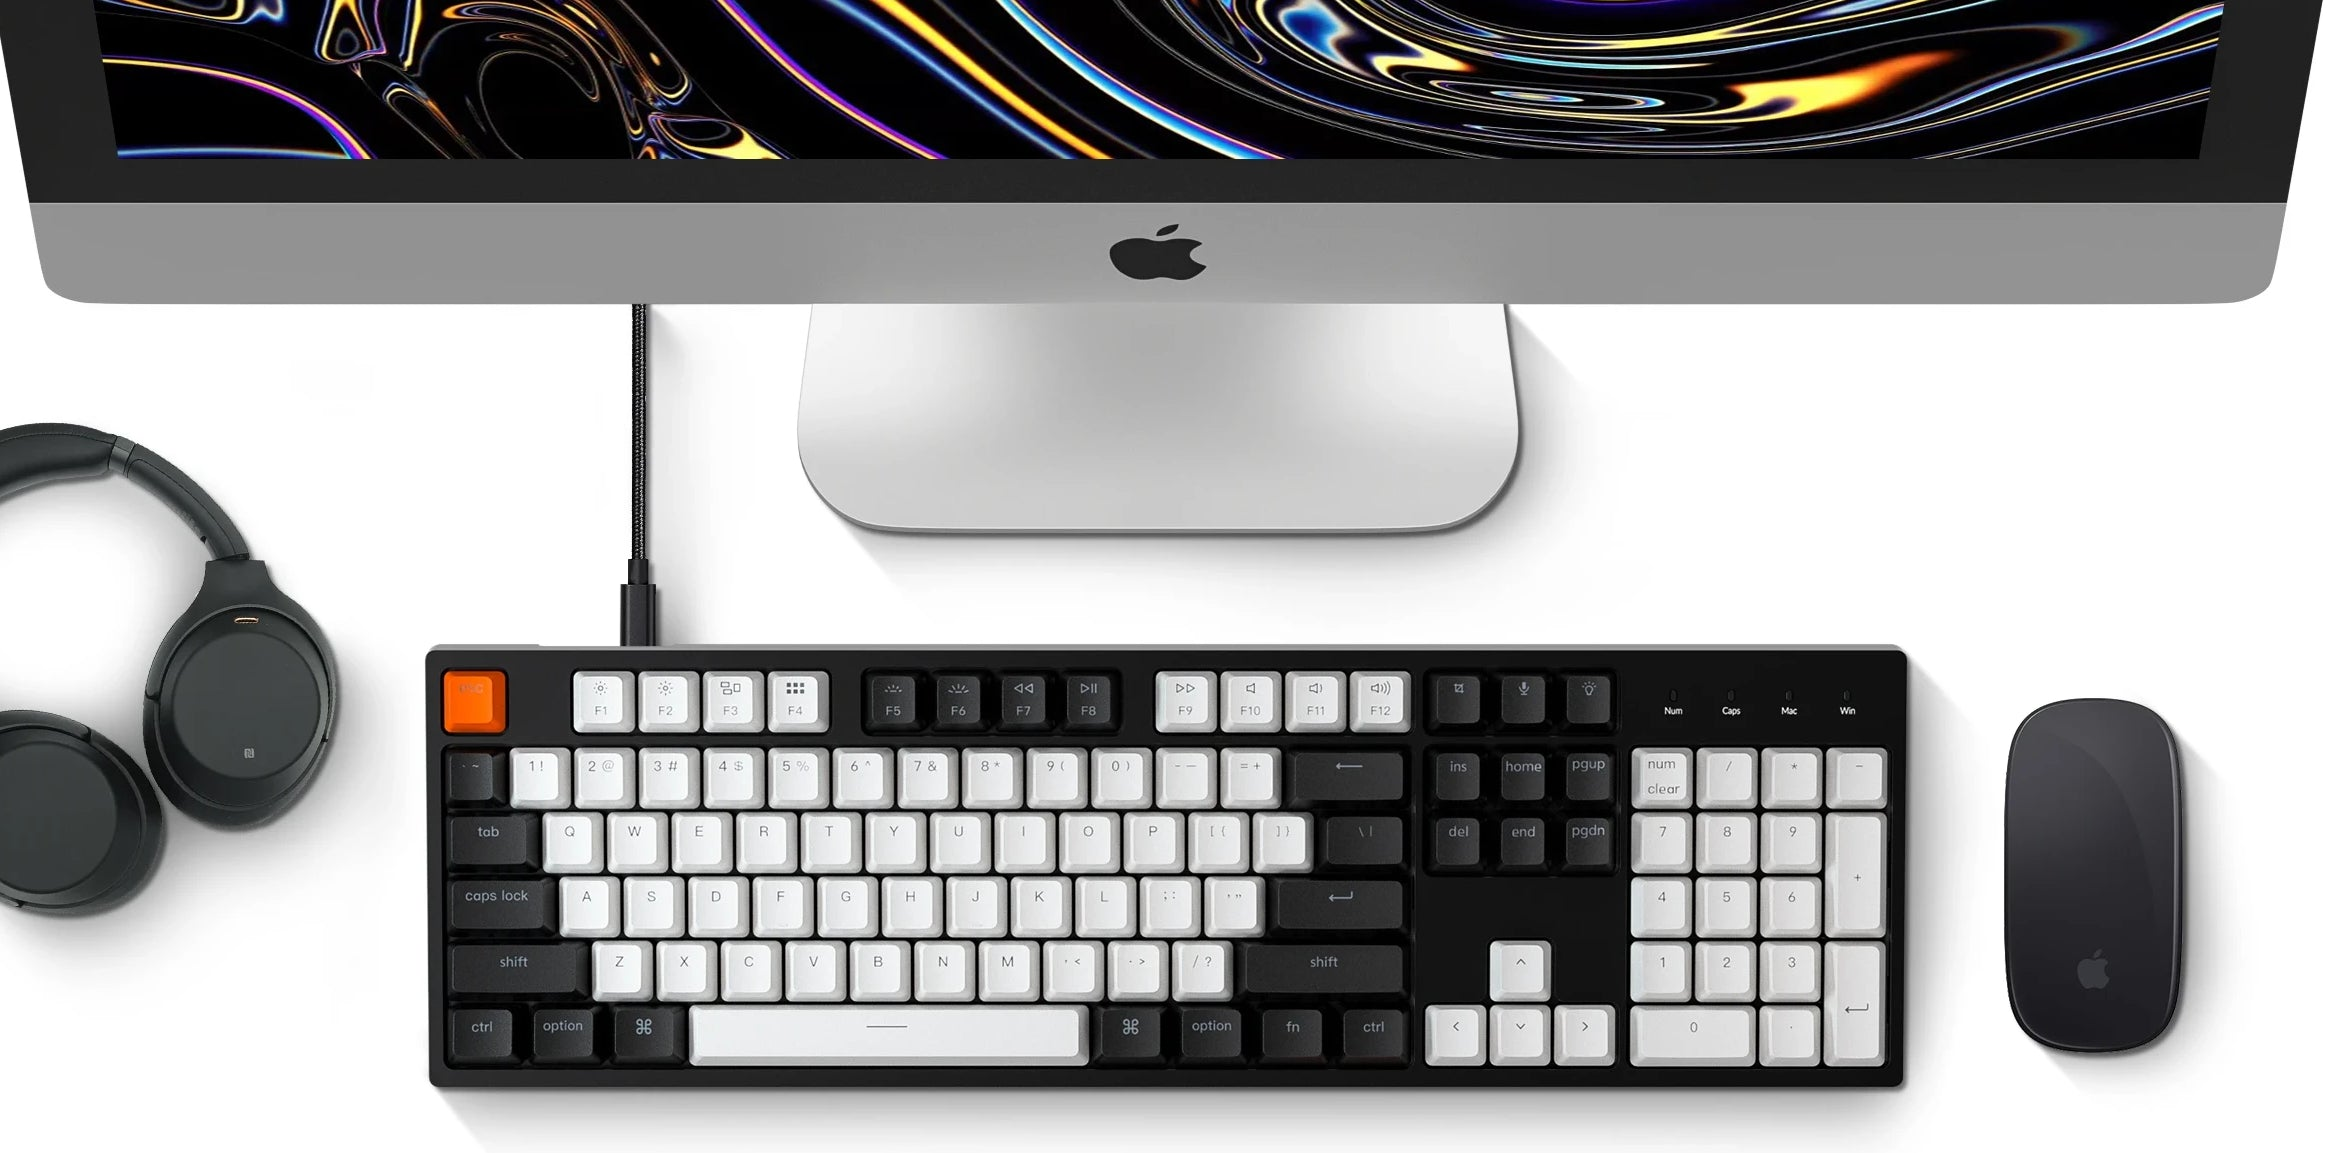 Keychron C2 hot-swappable wired type-c mechanical keyboard 104-keys full-size layout for Mac Windows iOS Gateron switch red blue brown RGB backlight